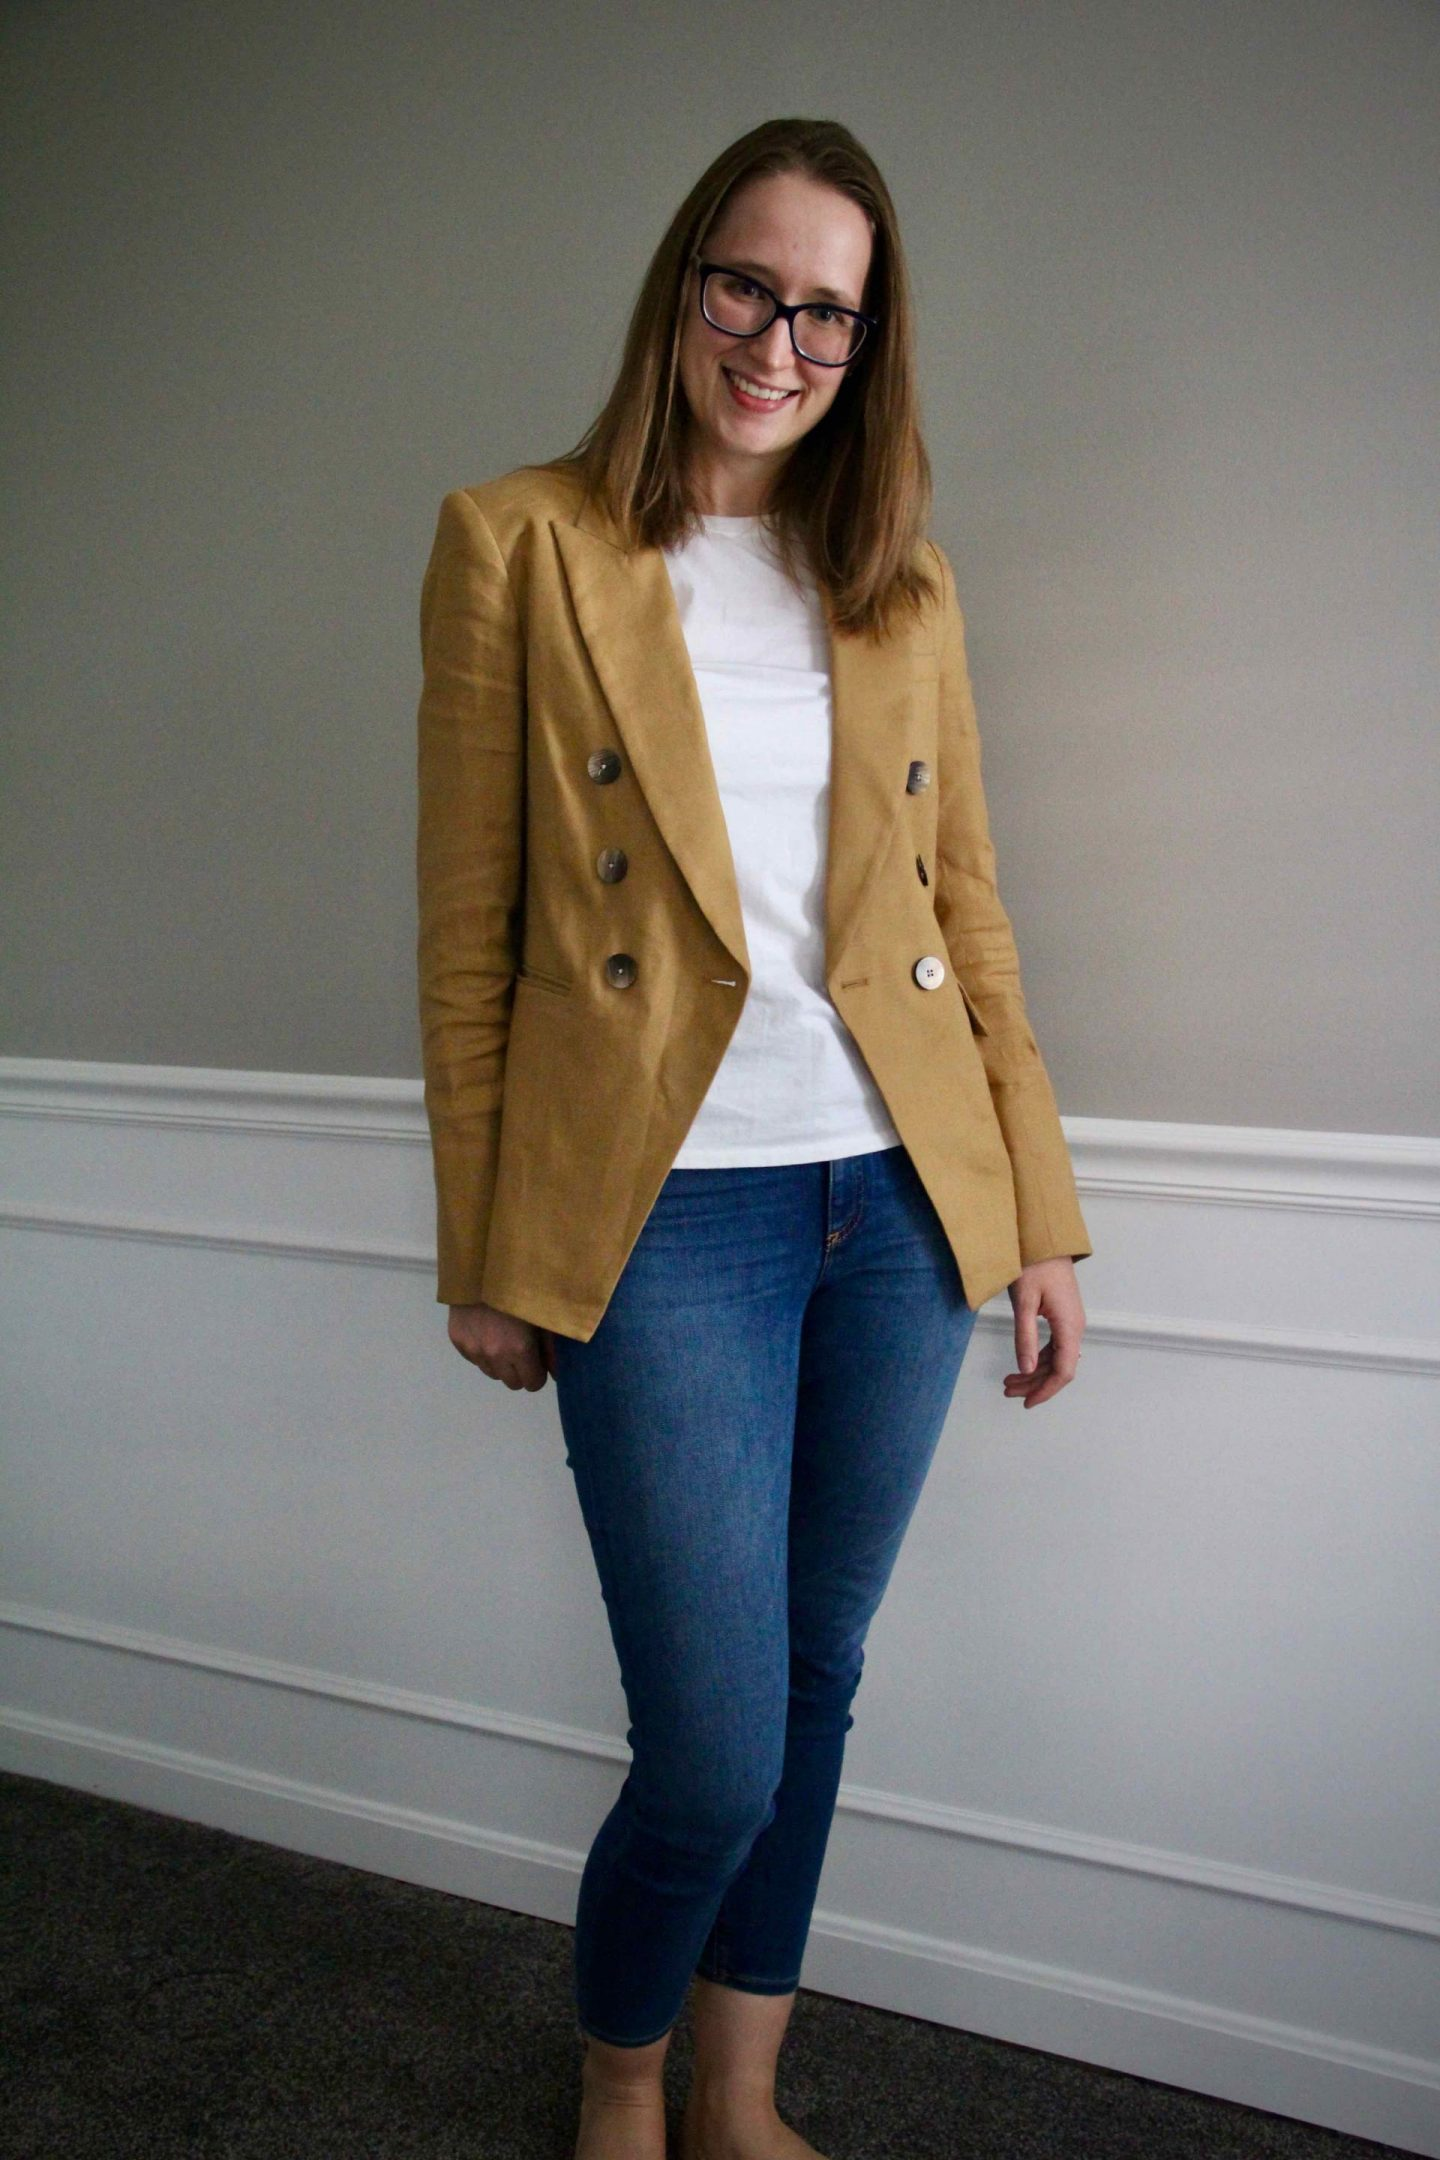 Casual Work Outfit Ideas with Veronica Beard Blazer | The Spectacular Adventurer